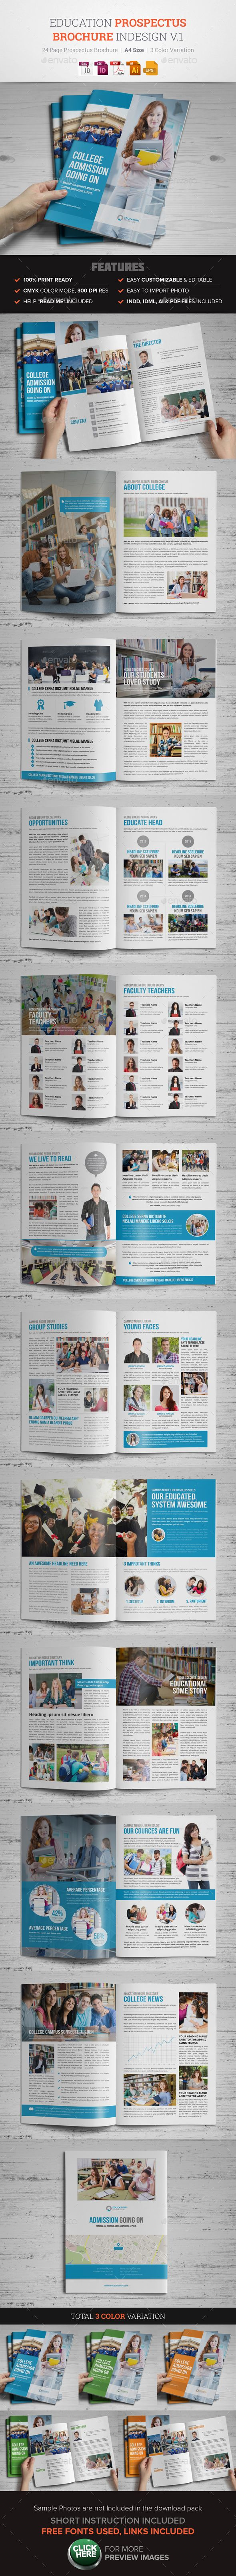 Education Prospectus Brochure Design Template Vector EPS, InDesign INDD, AI Illustrator. Download here: https://graphicriver.net/item/education-prospectus-brochure-design-v1/17073024?ref=ksioks